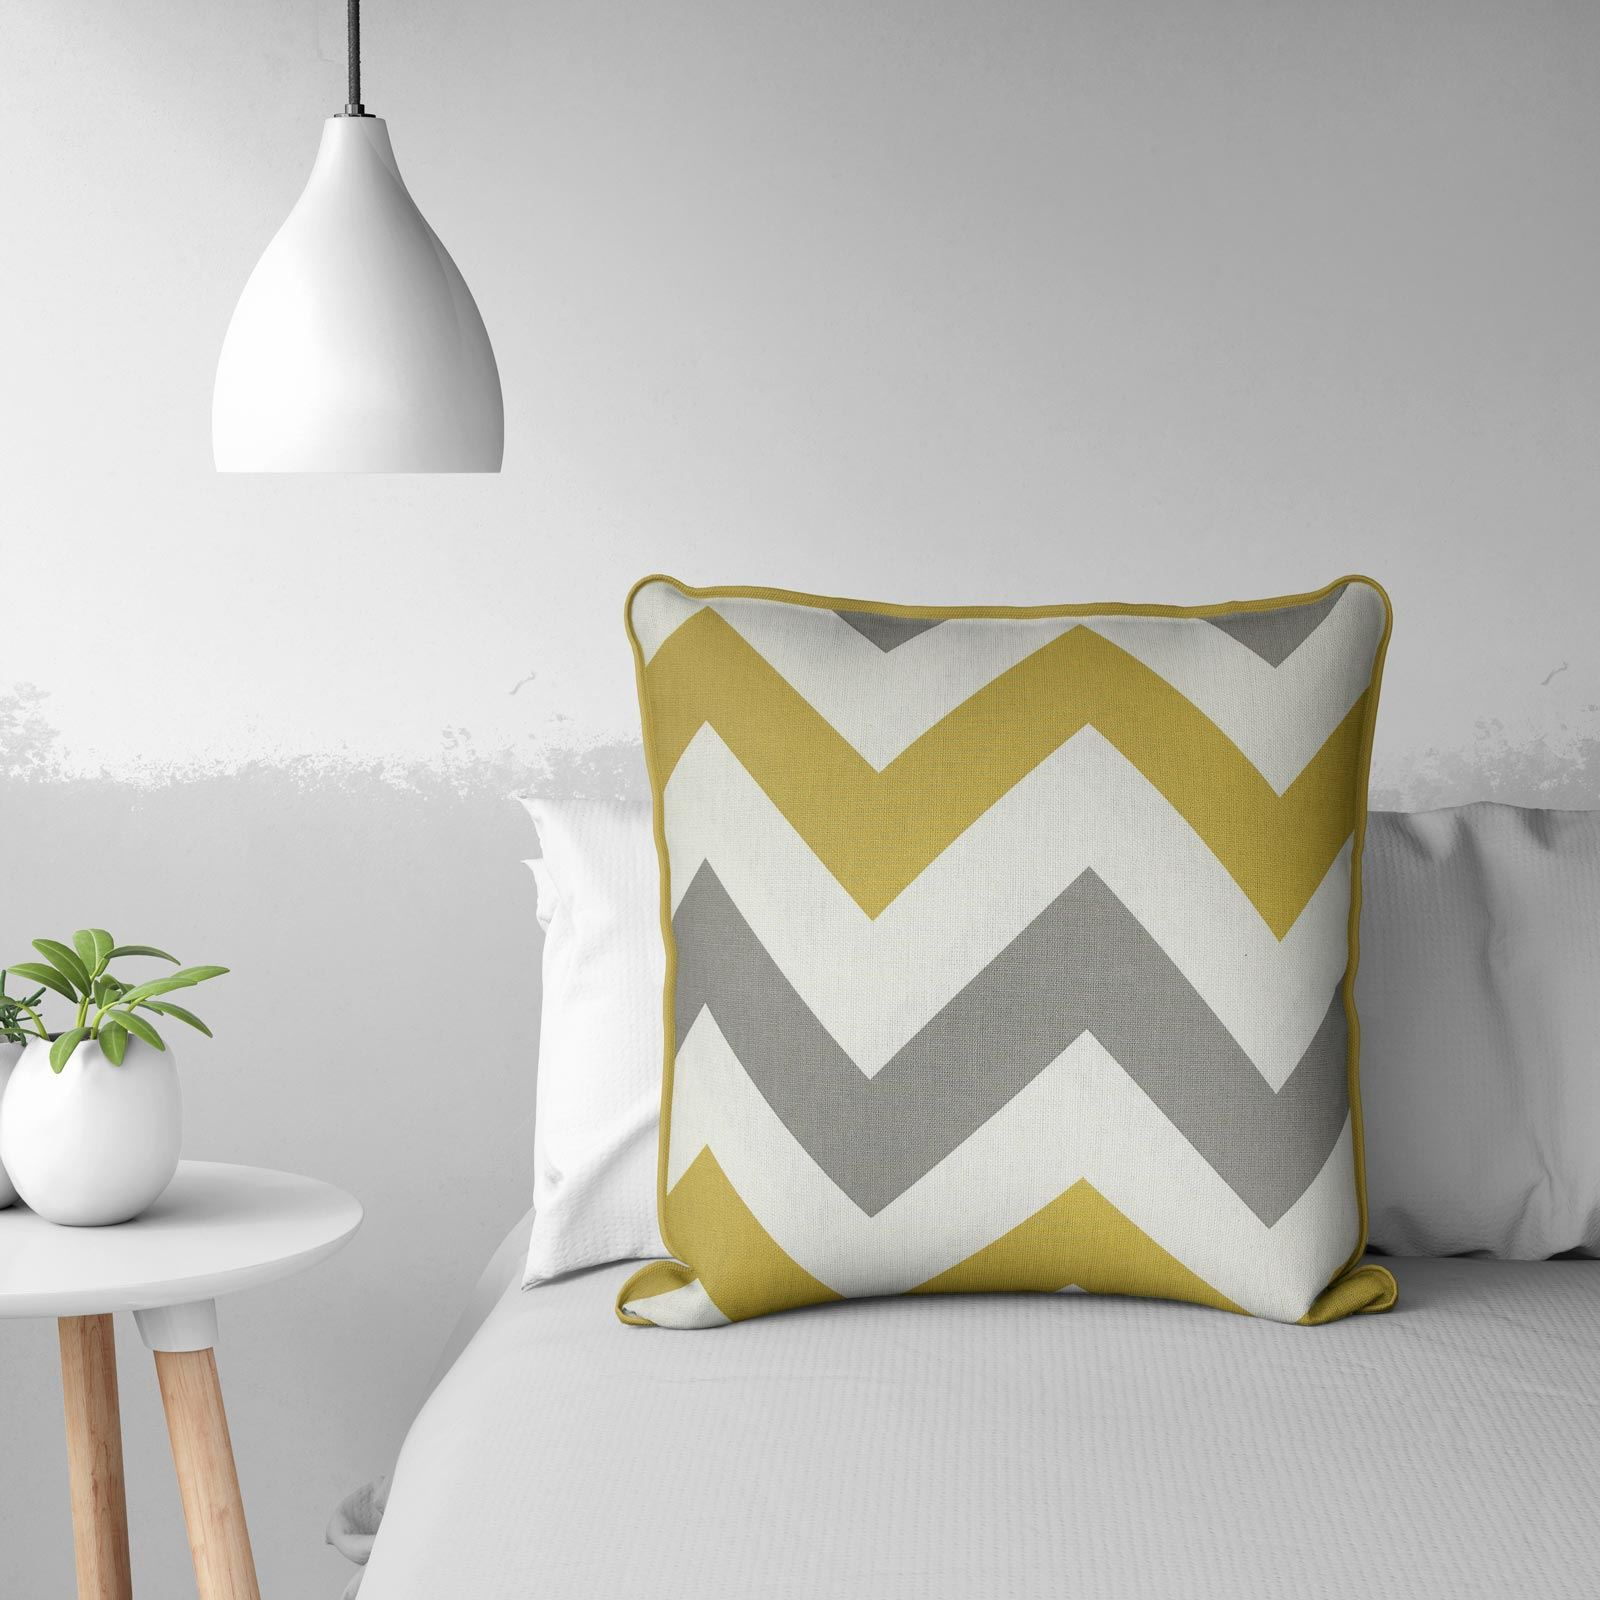 Grey-Ochre-Mustard-Cushion-Cover-Collection-17-034-18-034-Covers-Filled-Cushions thumbnail 55